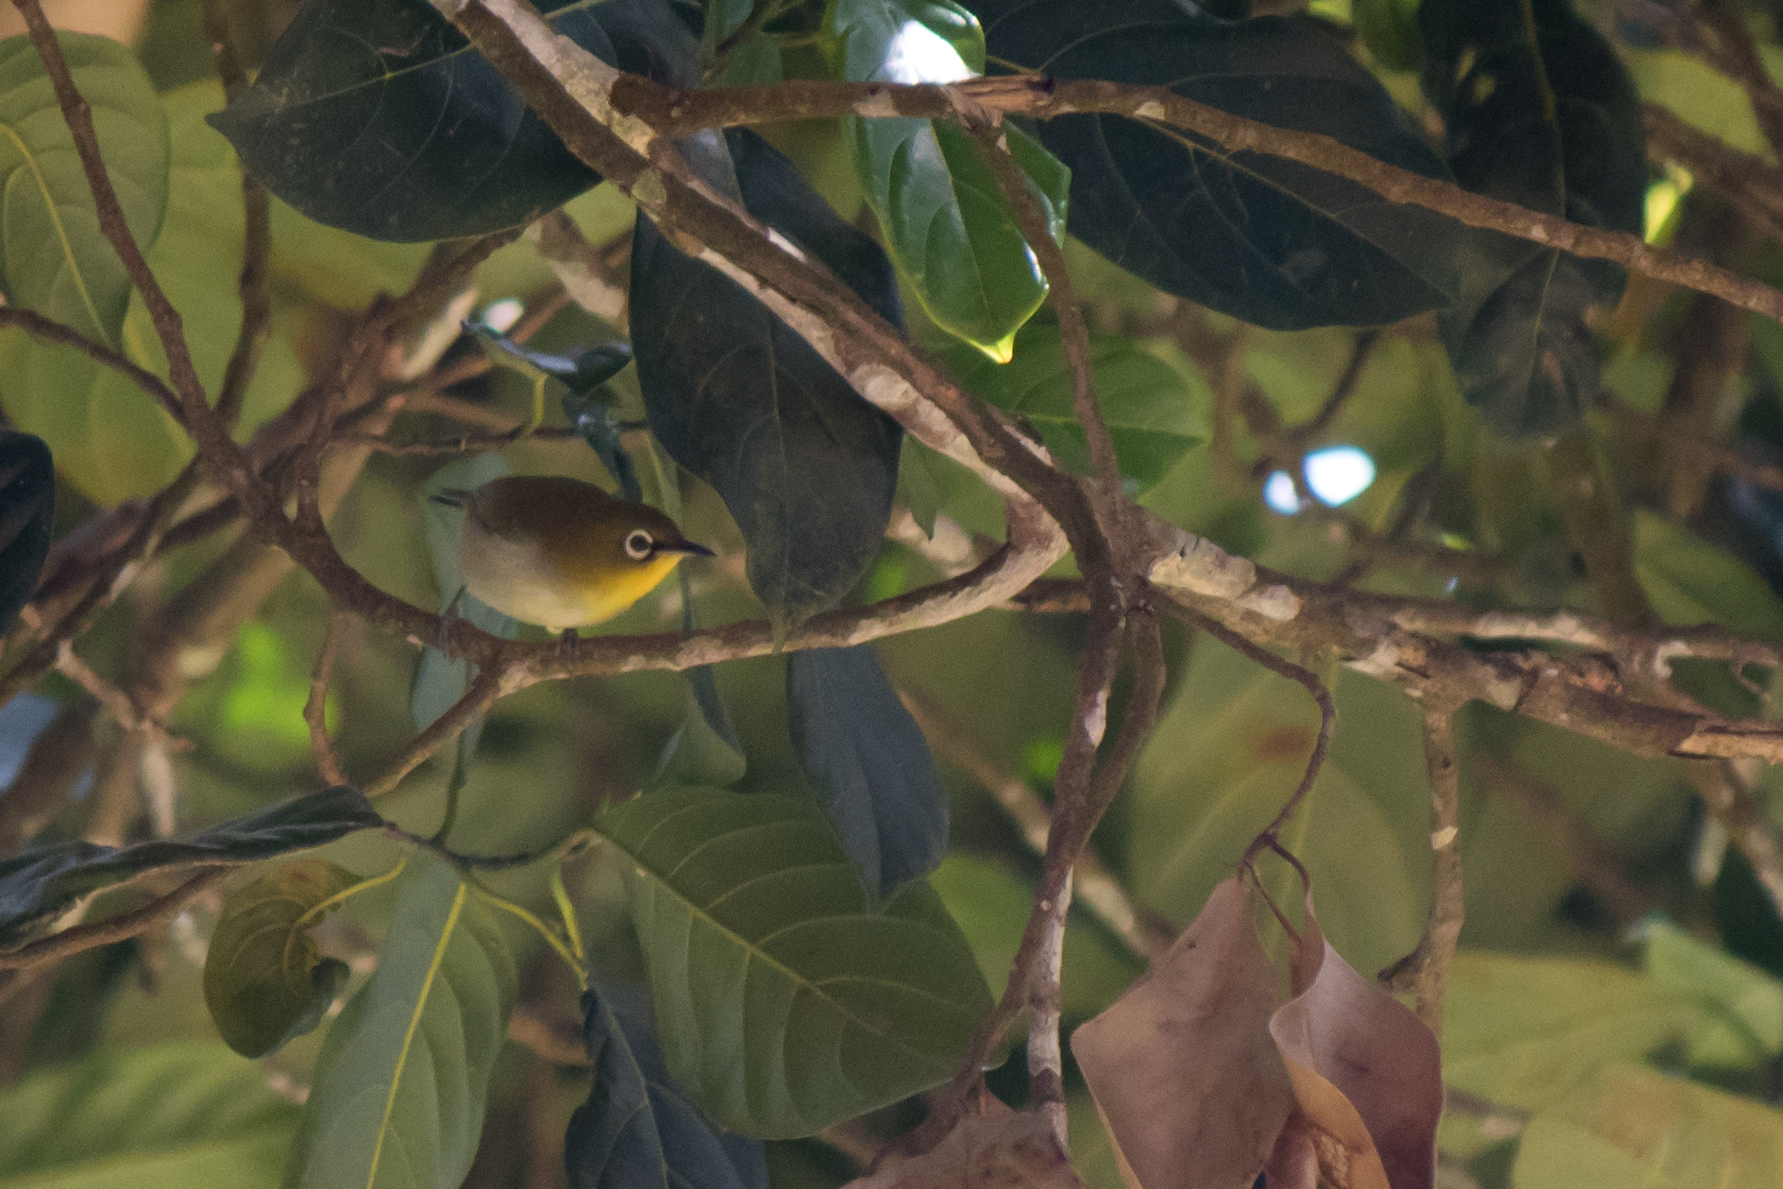 Oriental White-eye (Zosterops palpebrosus) in Munnar, Kerala, India. February 2015. Not baited. Not called in.